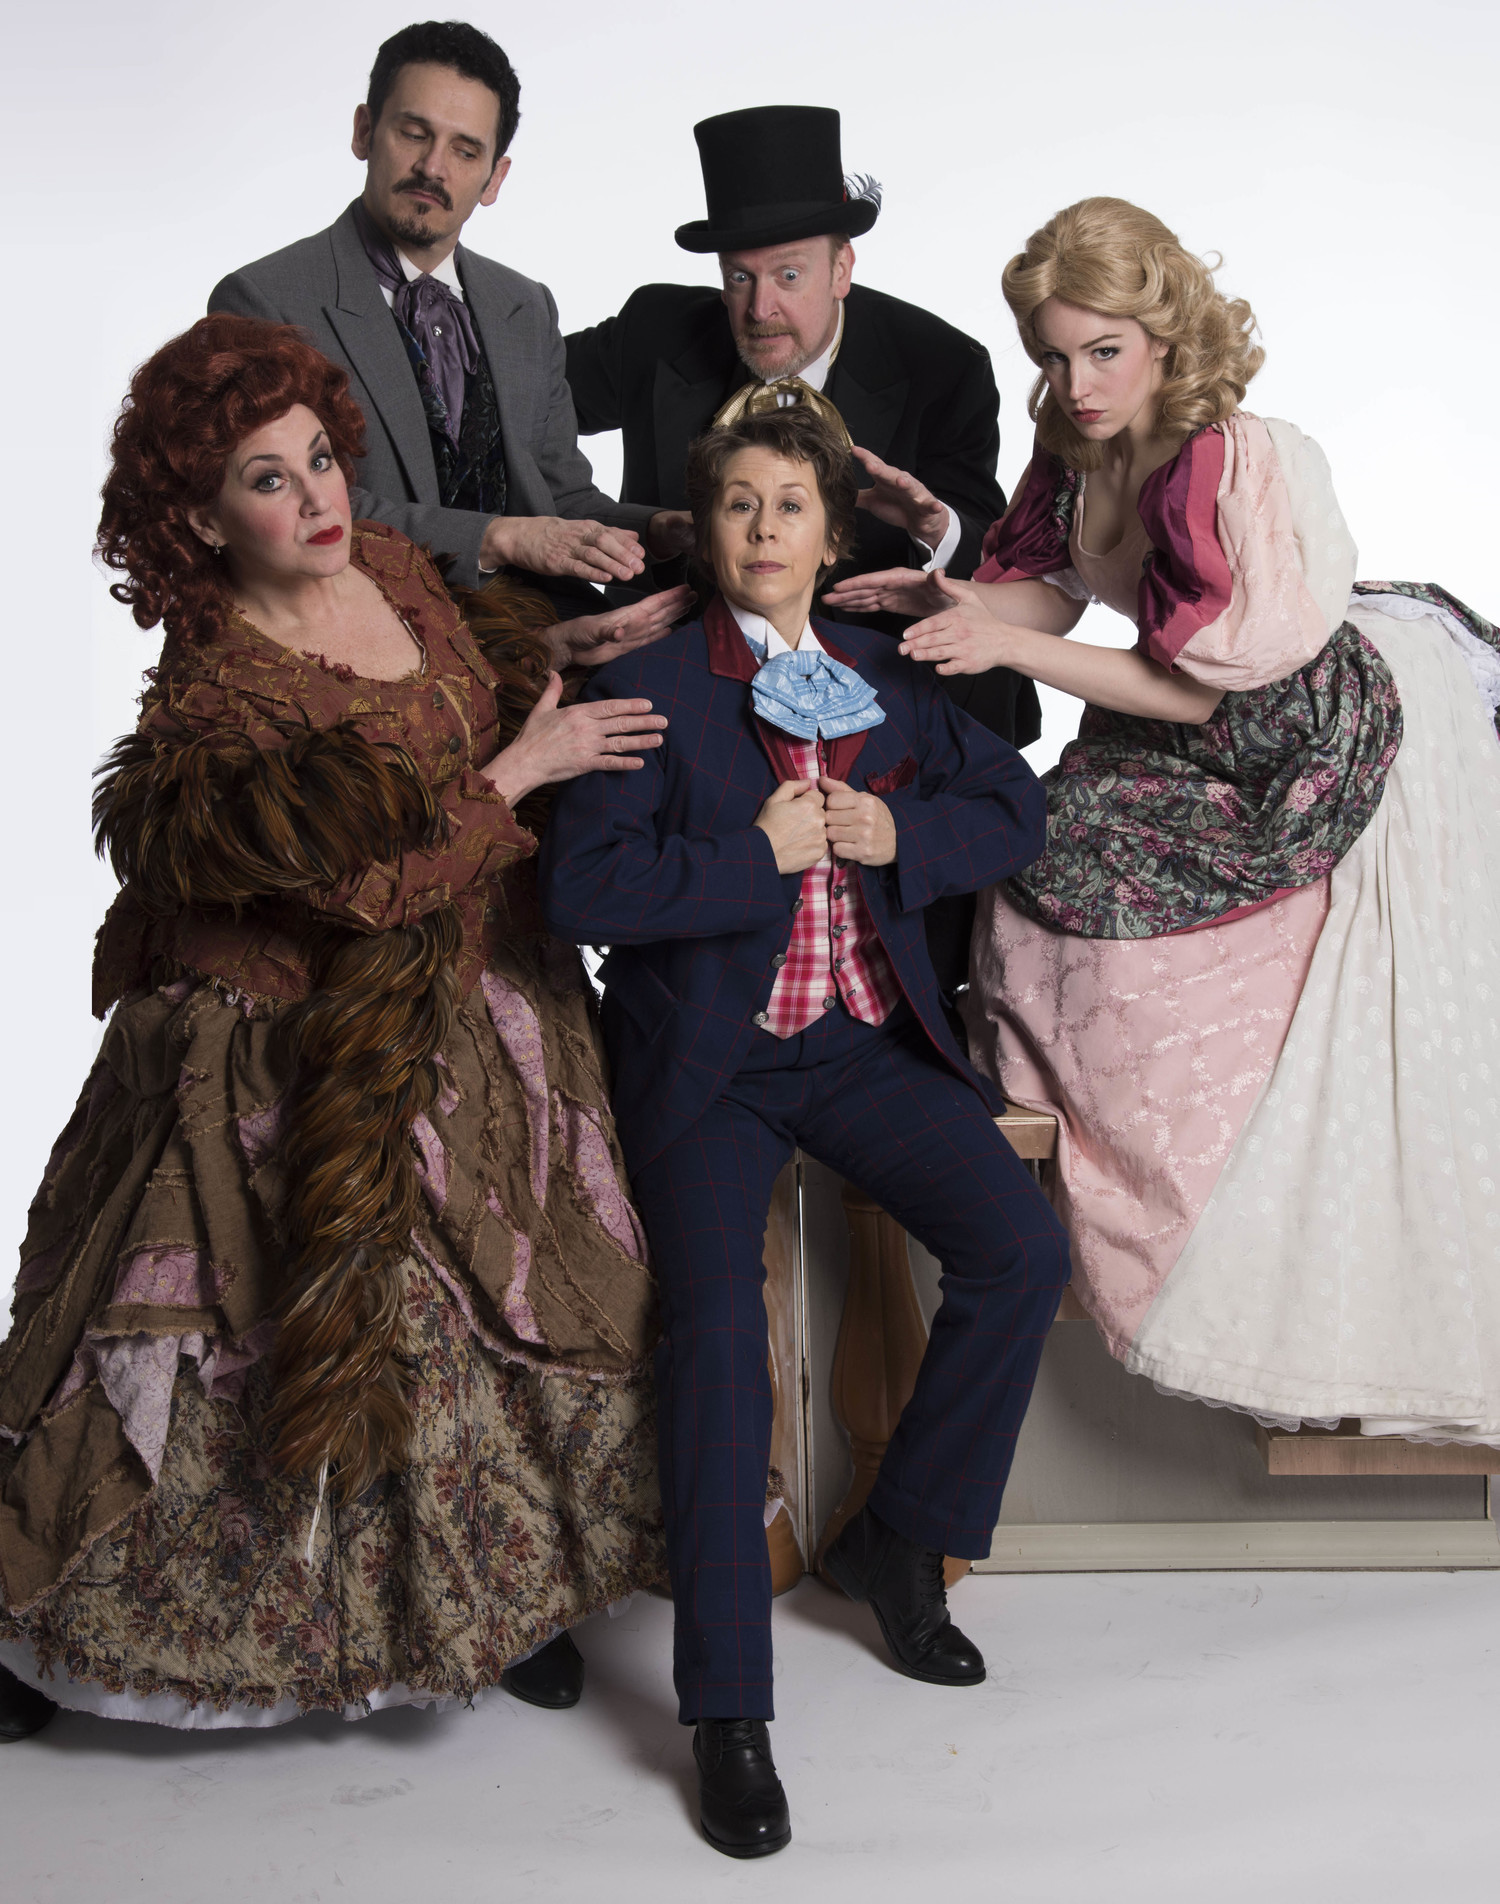 BWW Review: THE MYSTERY OF EDWIN DROOD Provides a Chance to Choose Your Own Ending!